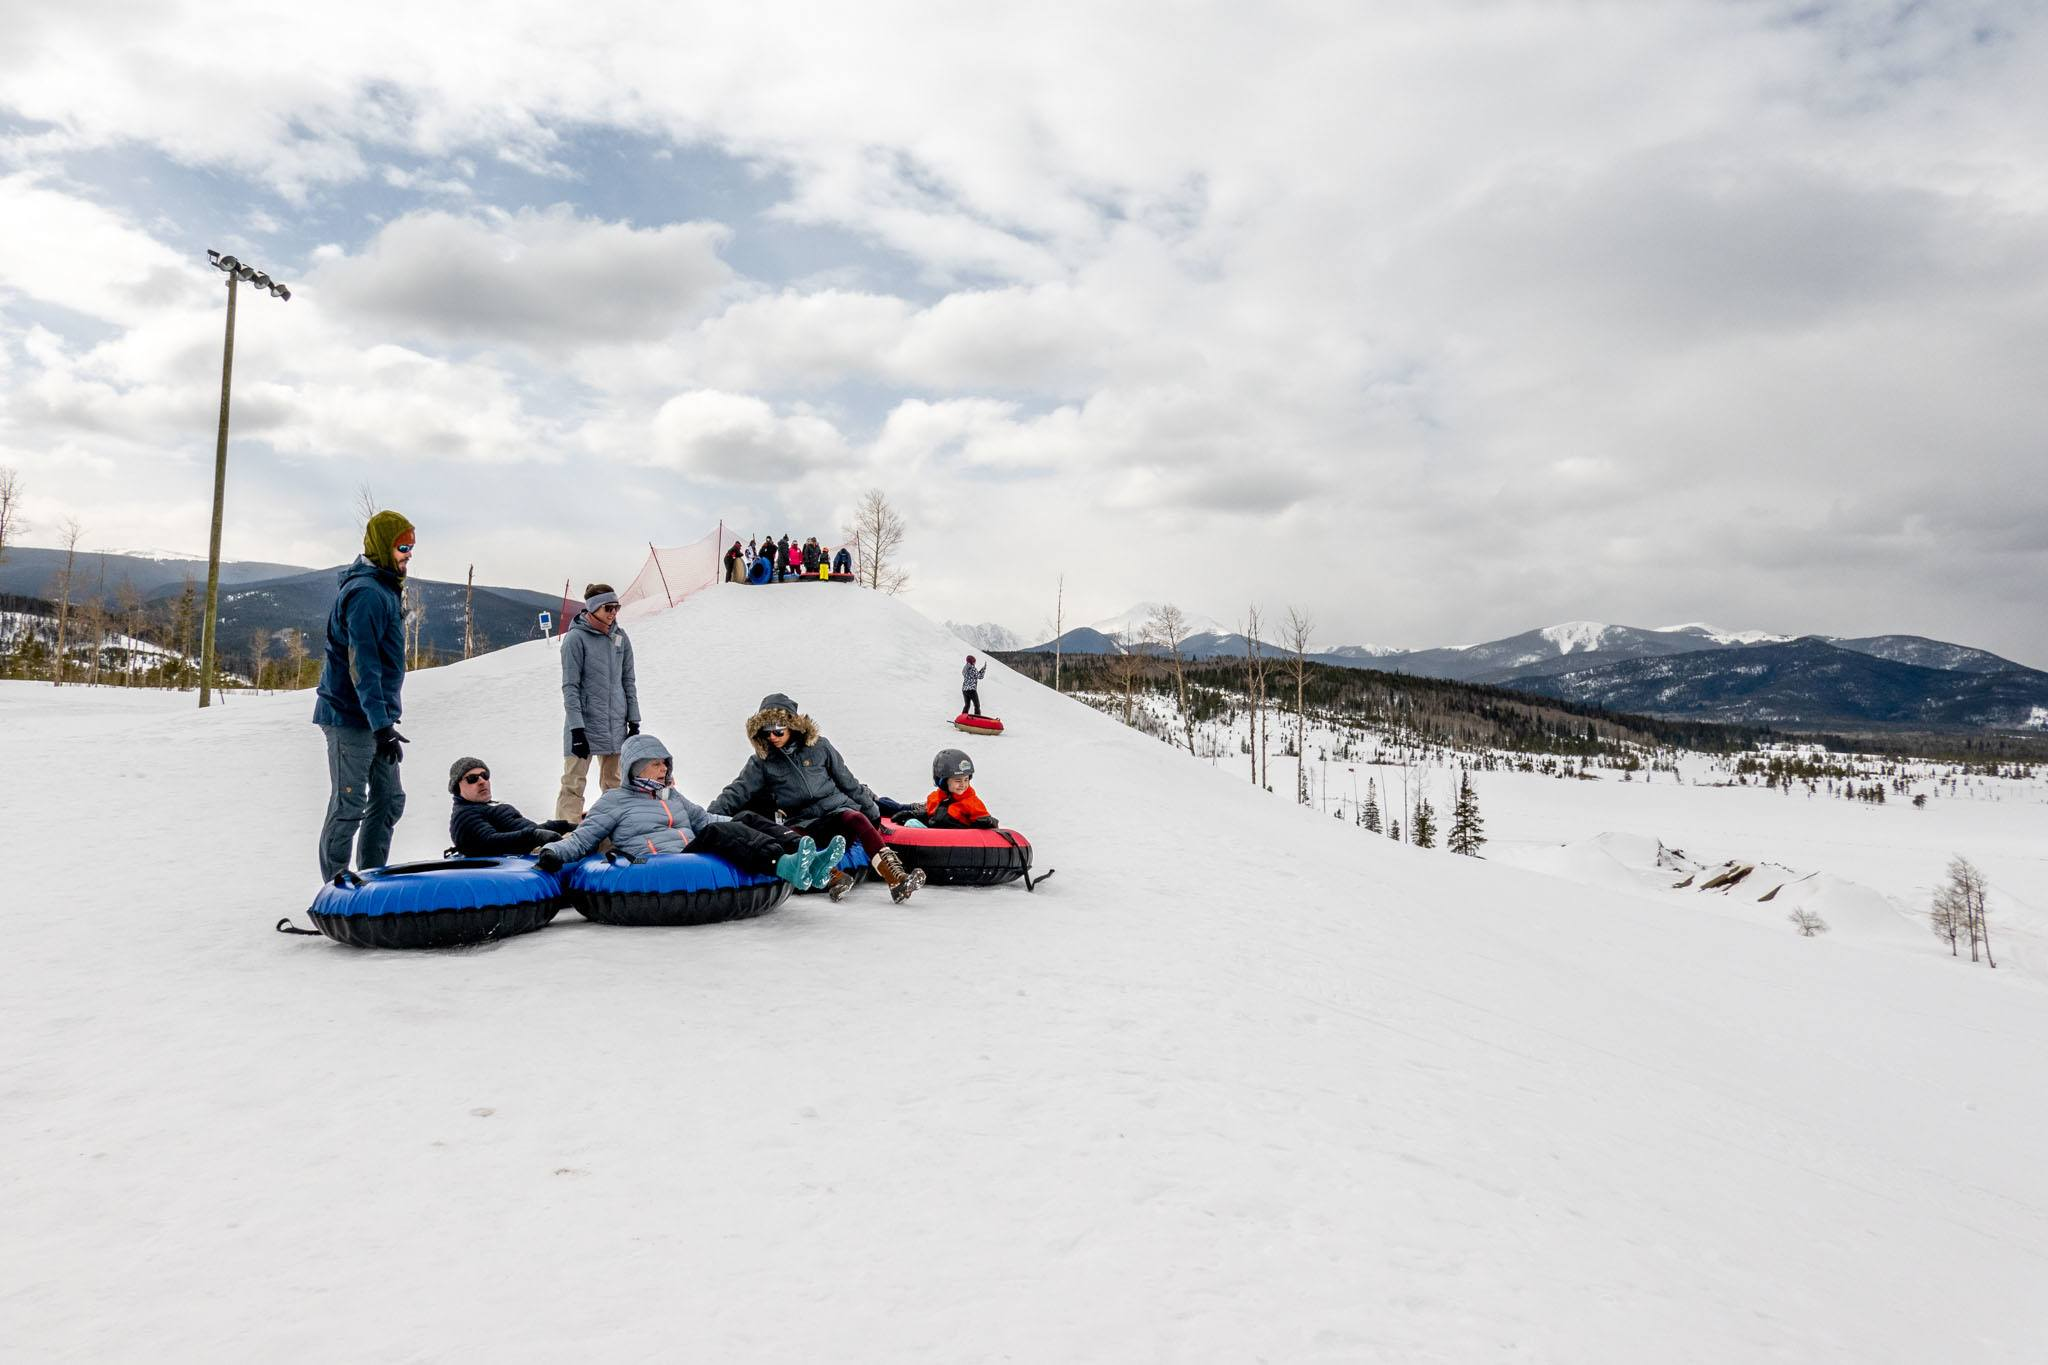 Group in innertubes at the top of a snow-covered hill